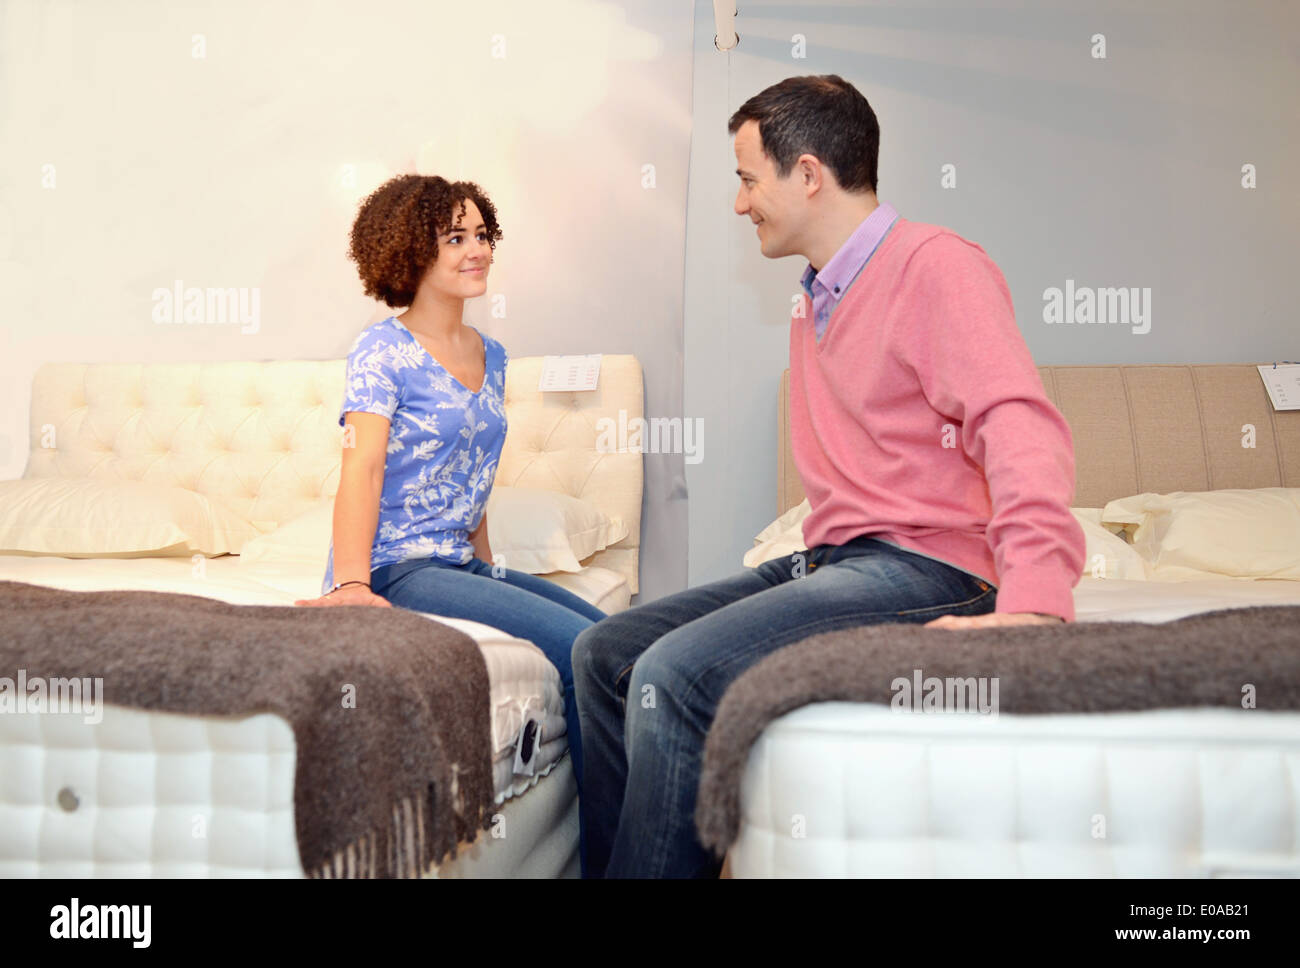 Couple sitting on beds in furniture shop showroom - Stock Image